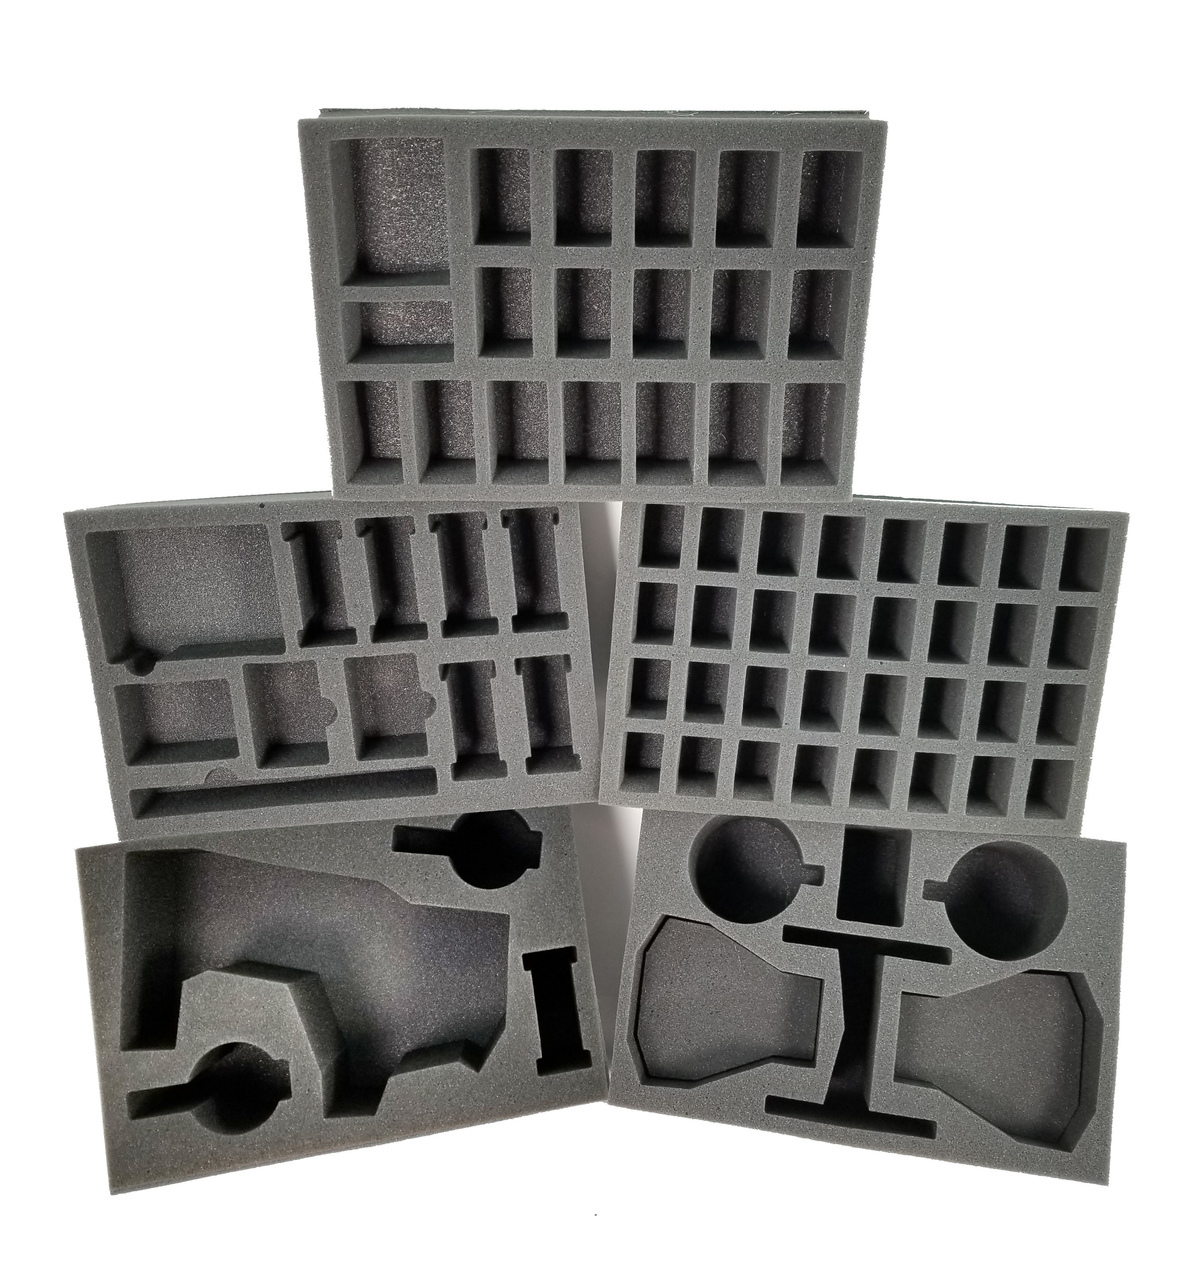 Star Wars Legion: First Wave Foam Tray Kit for the P.A.C.K. 352 (BFS)